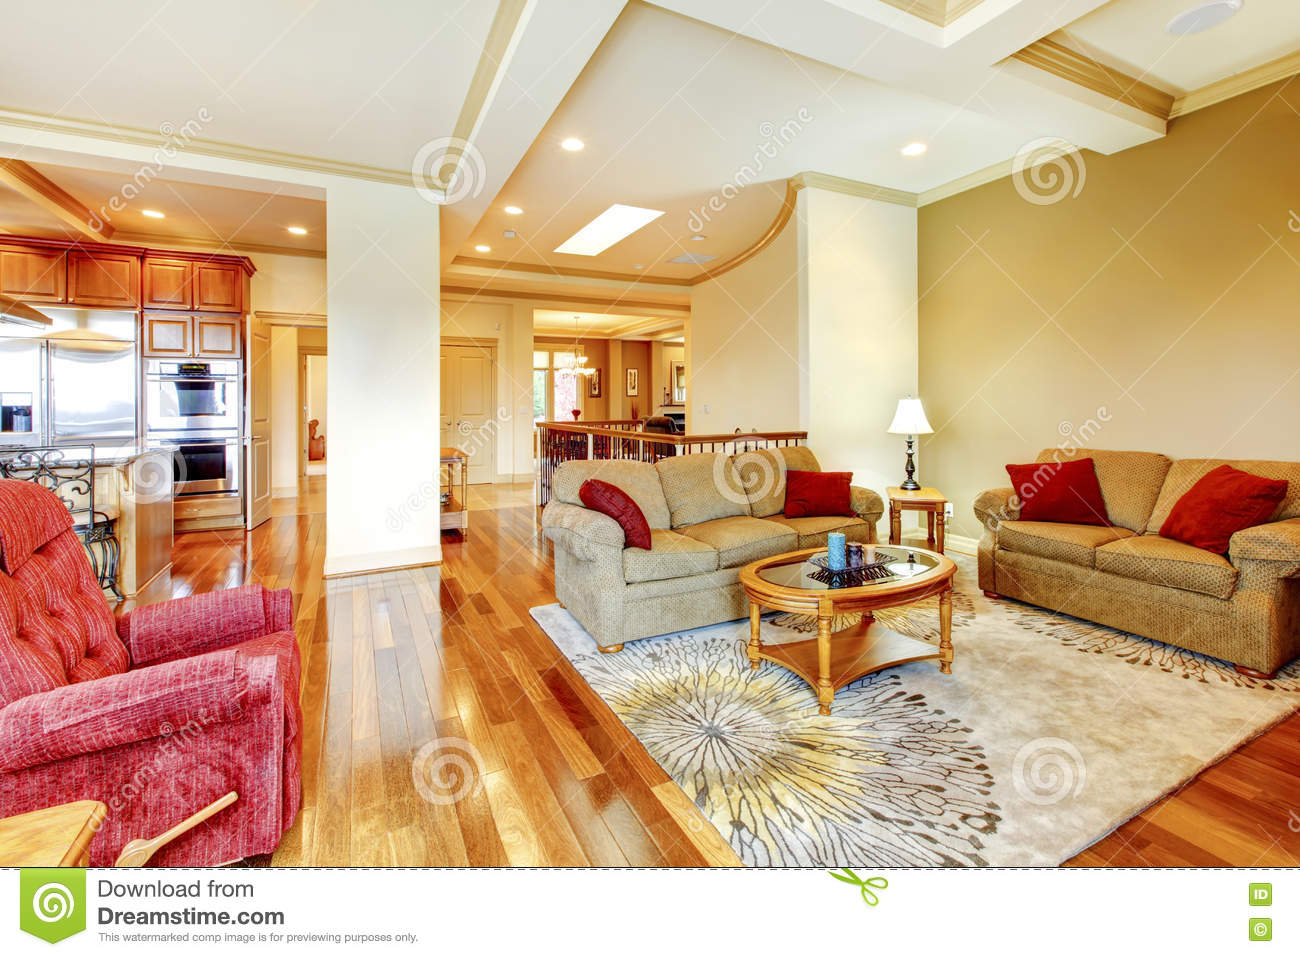 Brown and red living room - Bright Brown And Red Living Room Interior With Hardwood Floor N